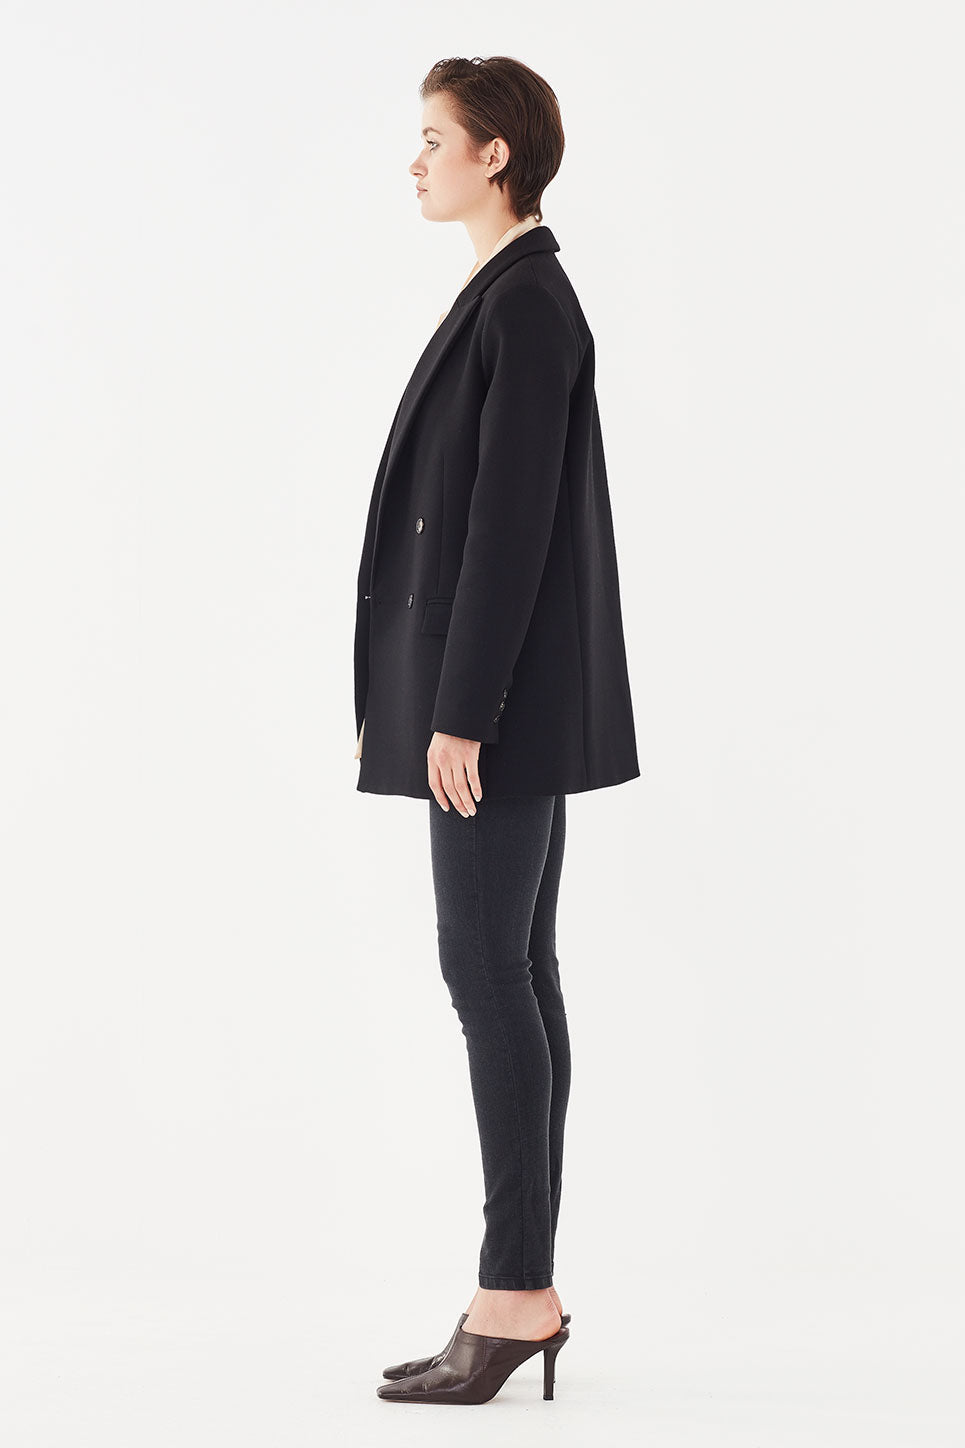 The Leandra Jacket in Black